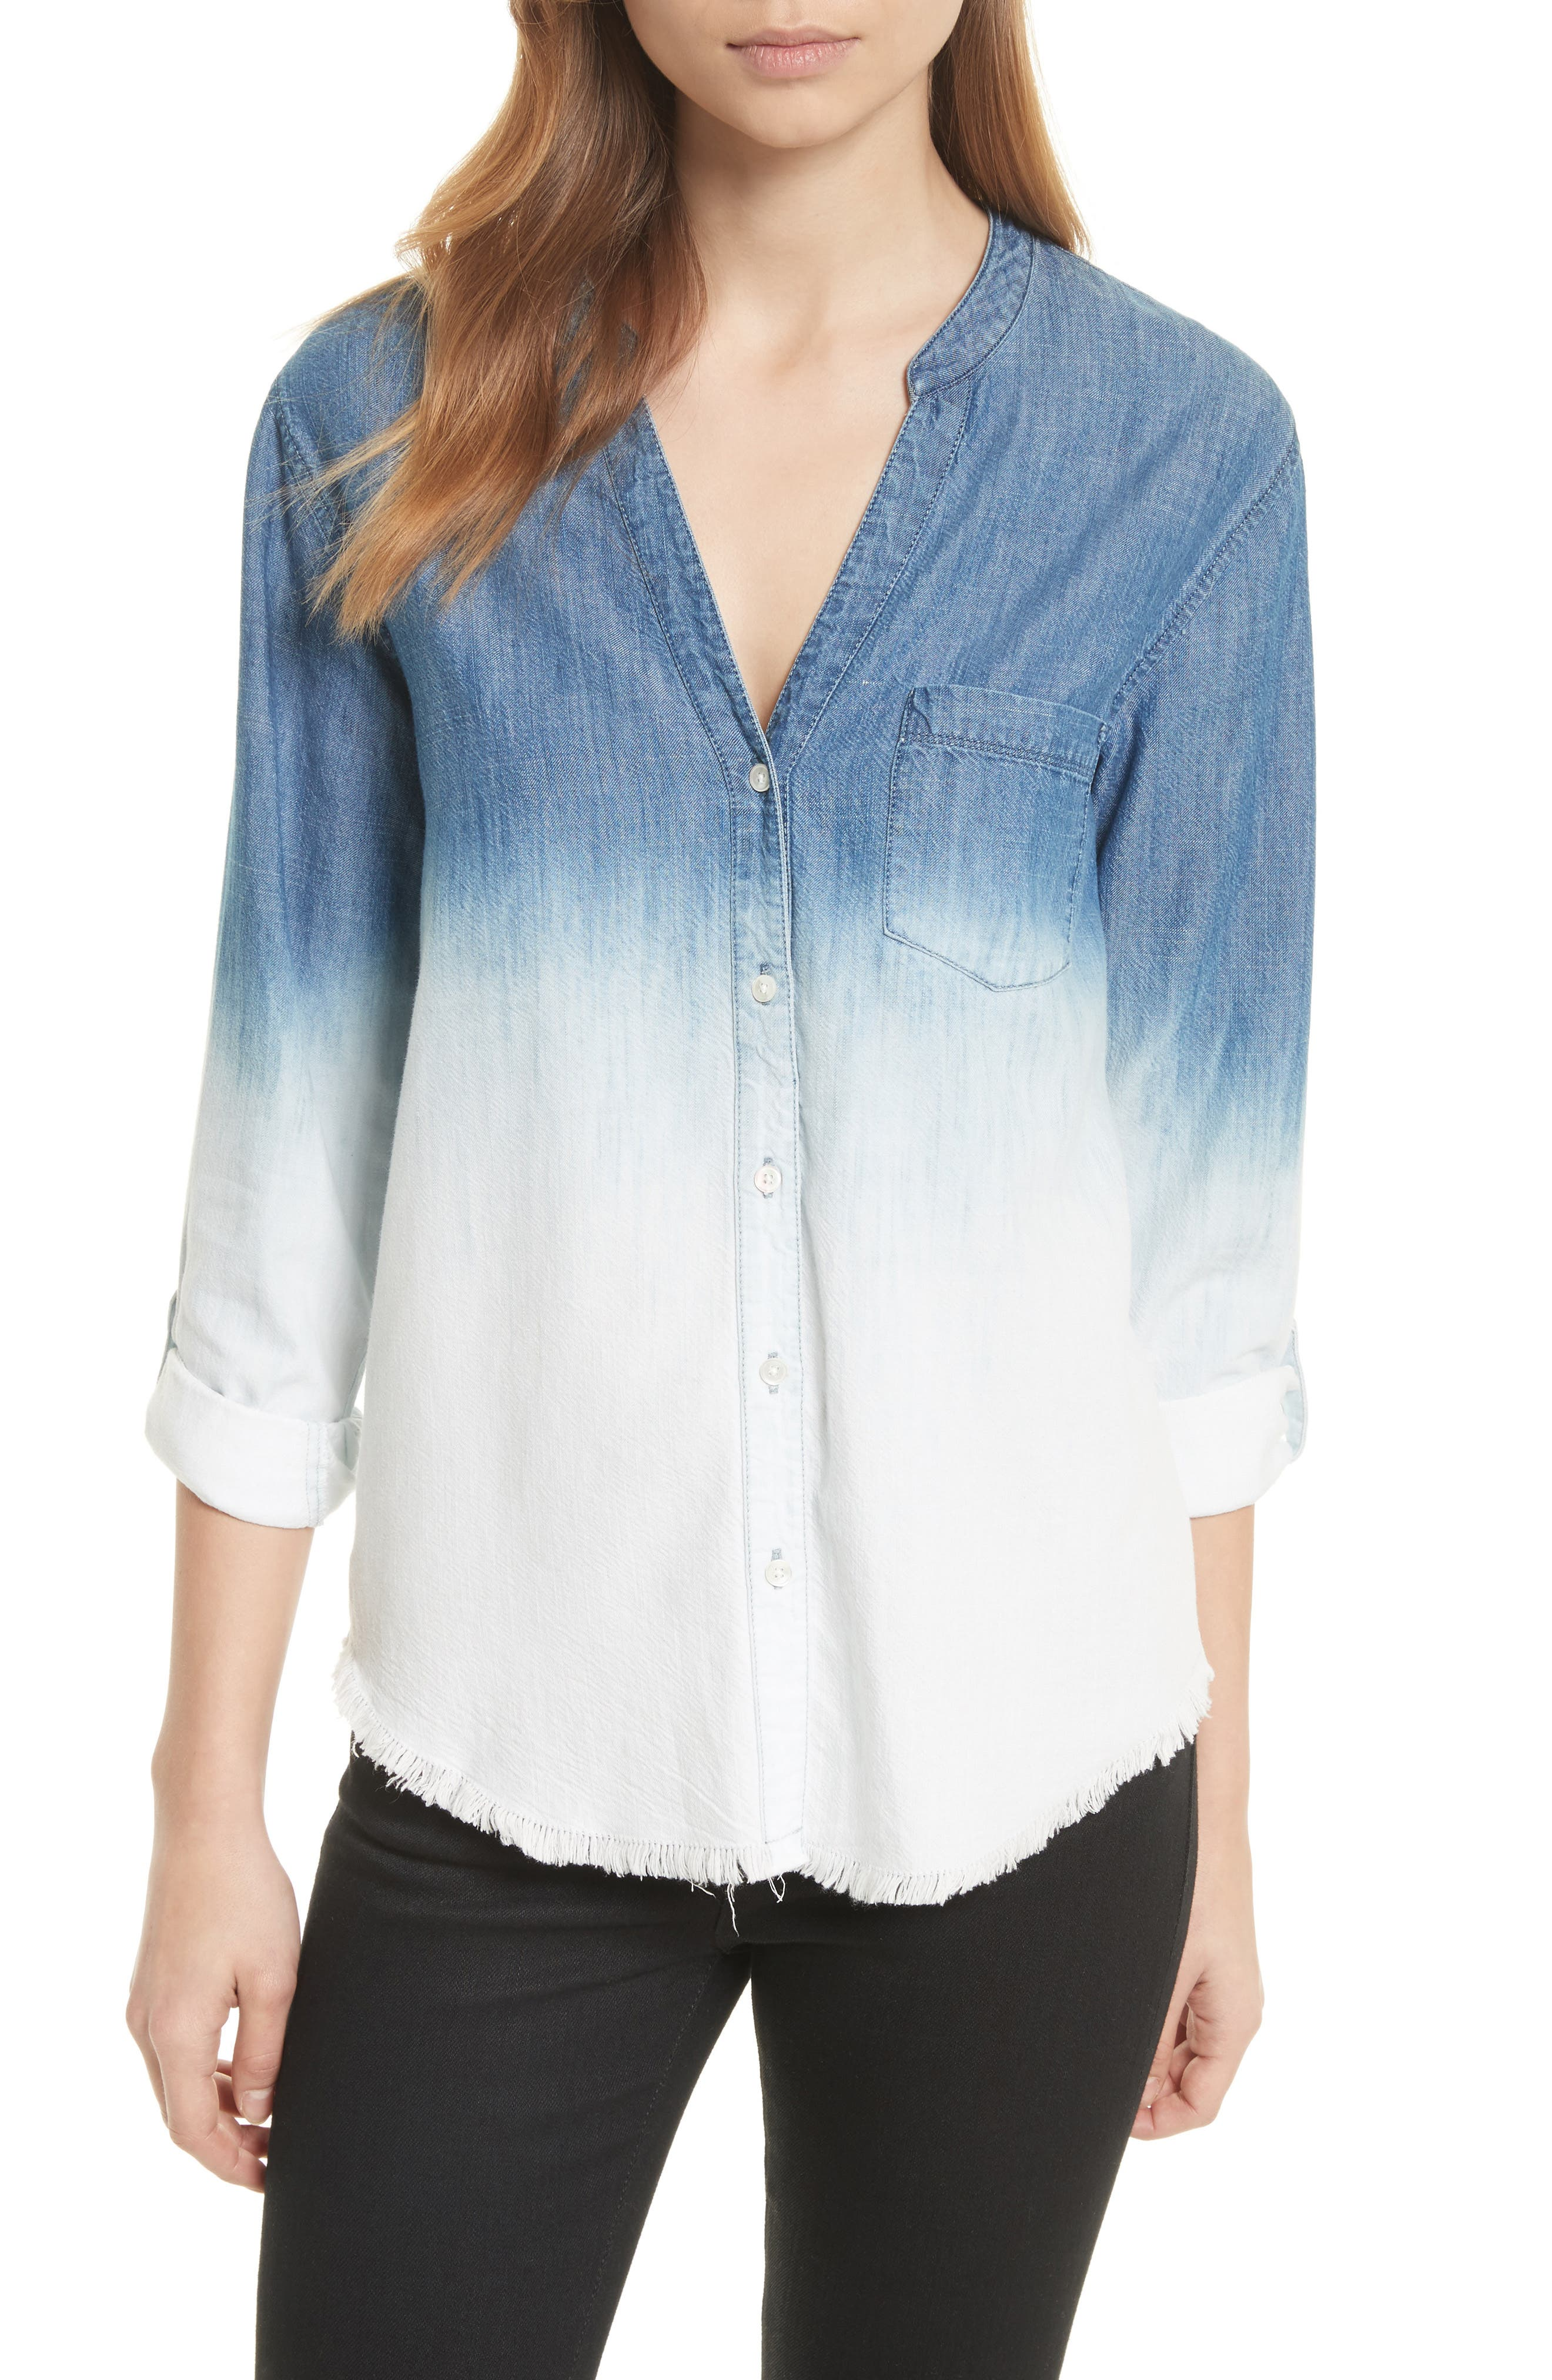 Soft Joie Normana Ombré Denim Shirt